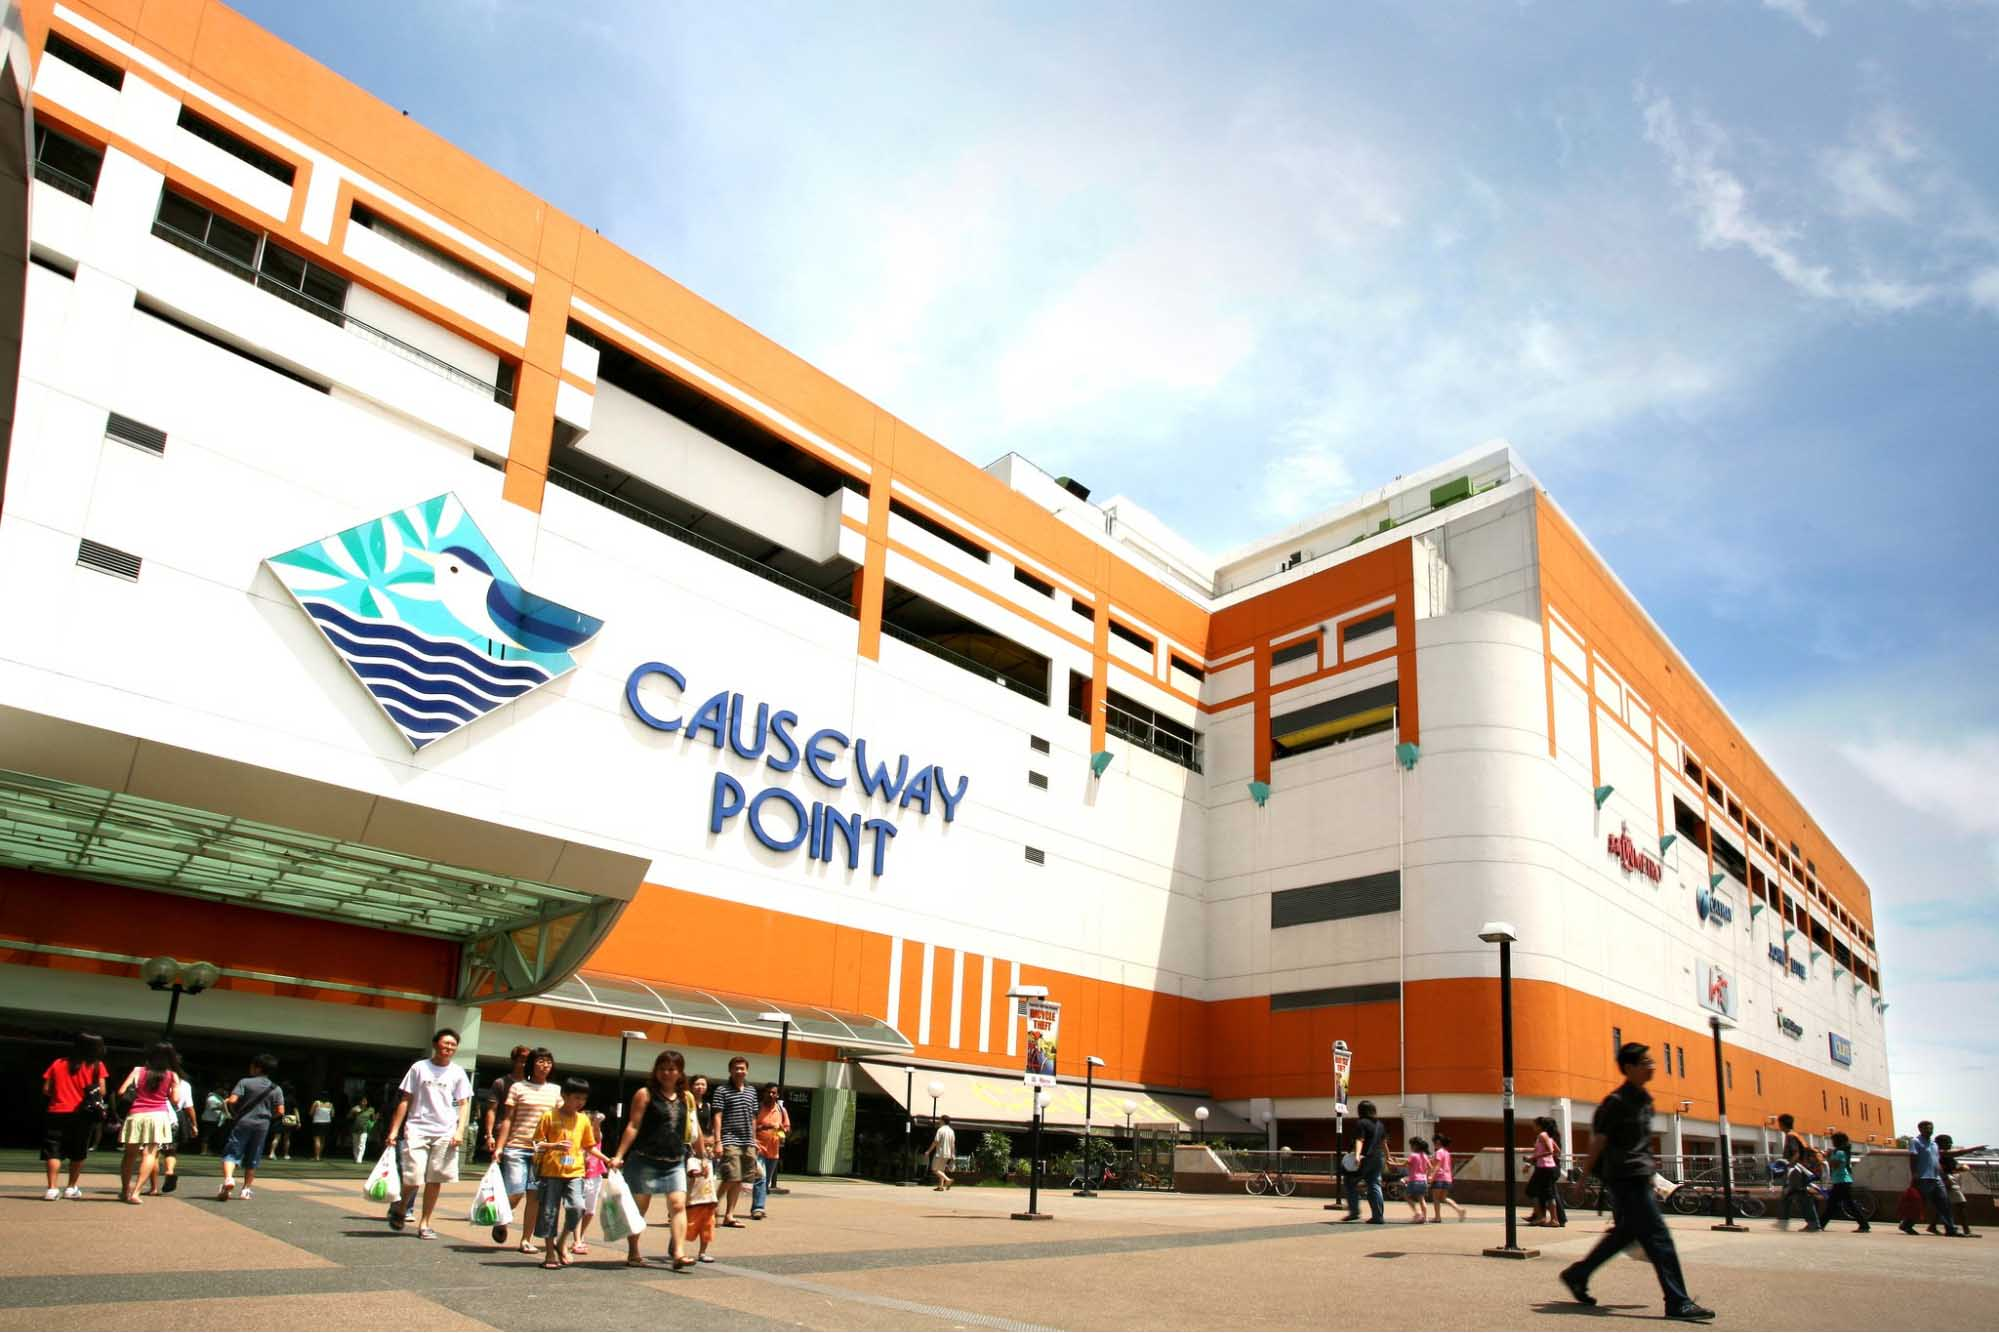 Causeway Point Old